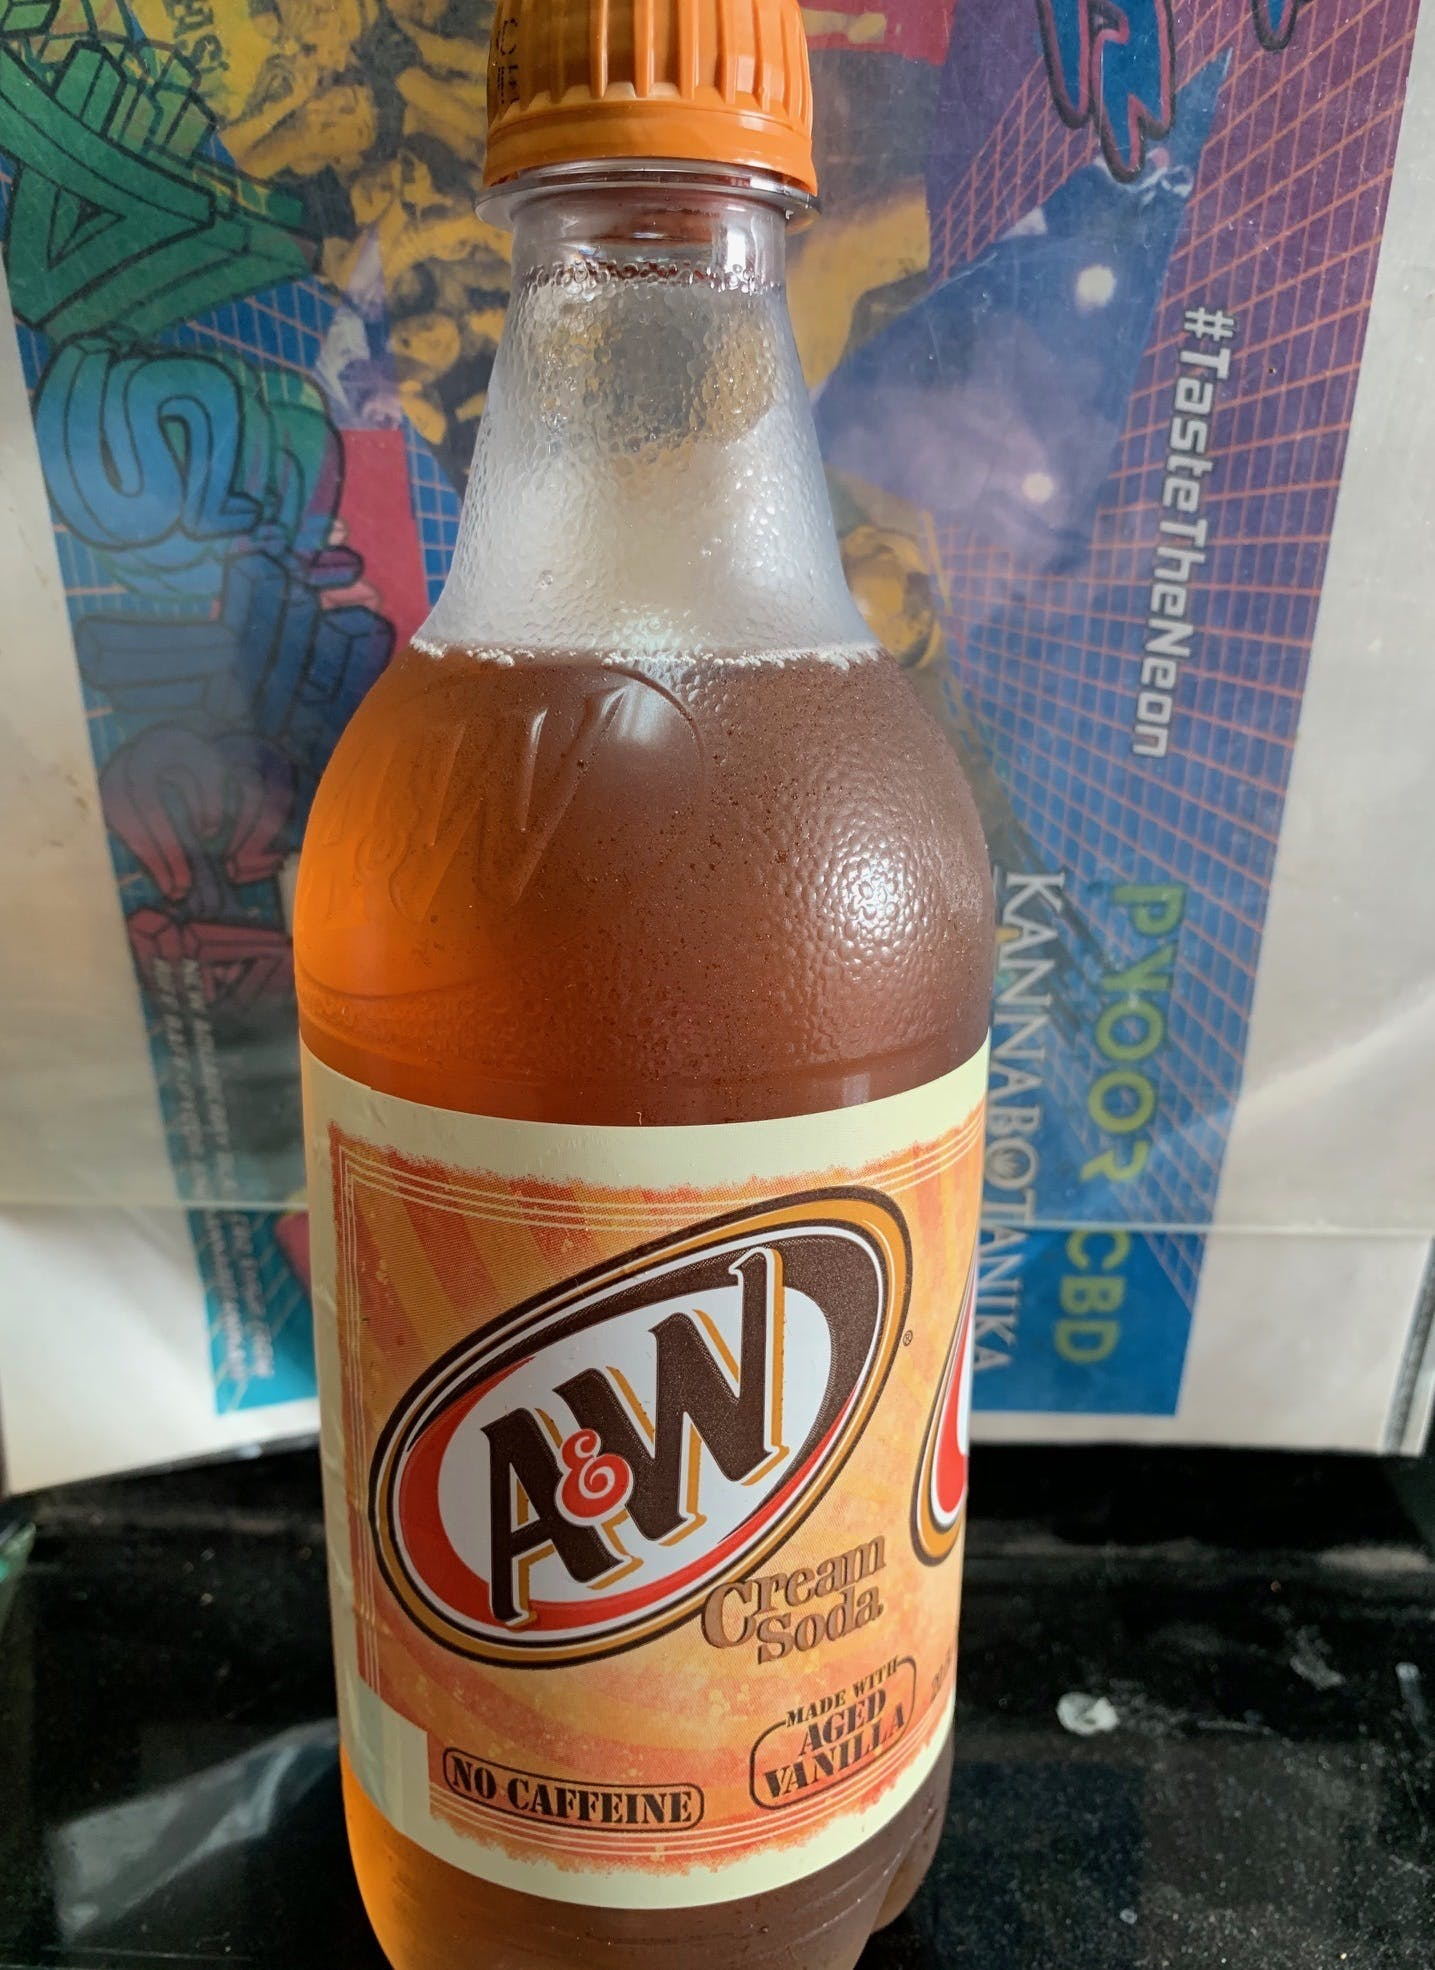 marijuana-dispensaries-2285-south-santa-fe-231-vista-aaw-cream-soda